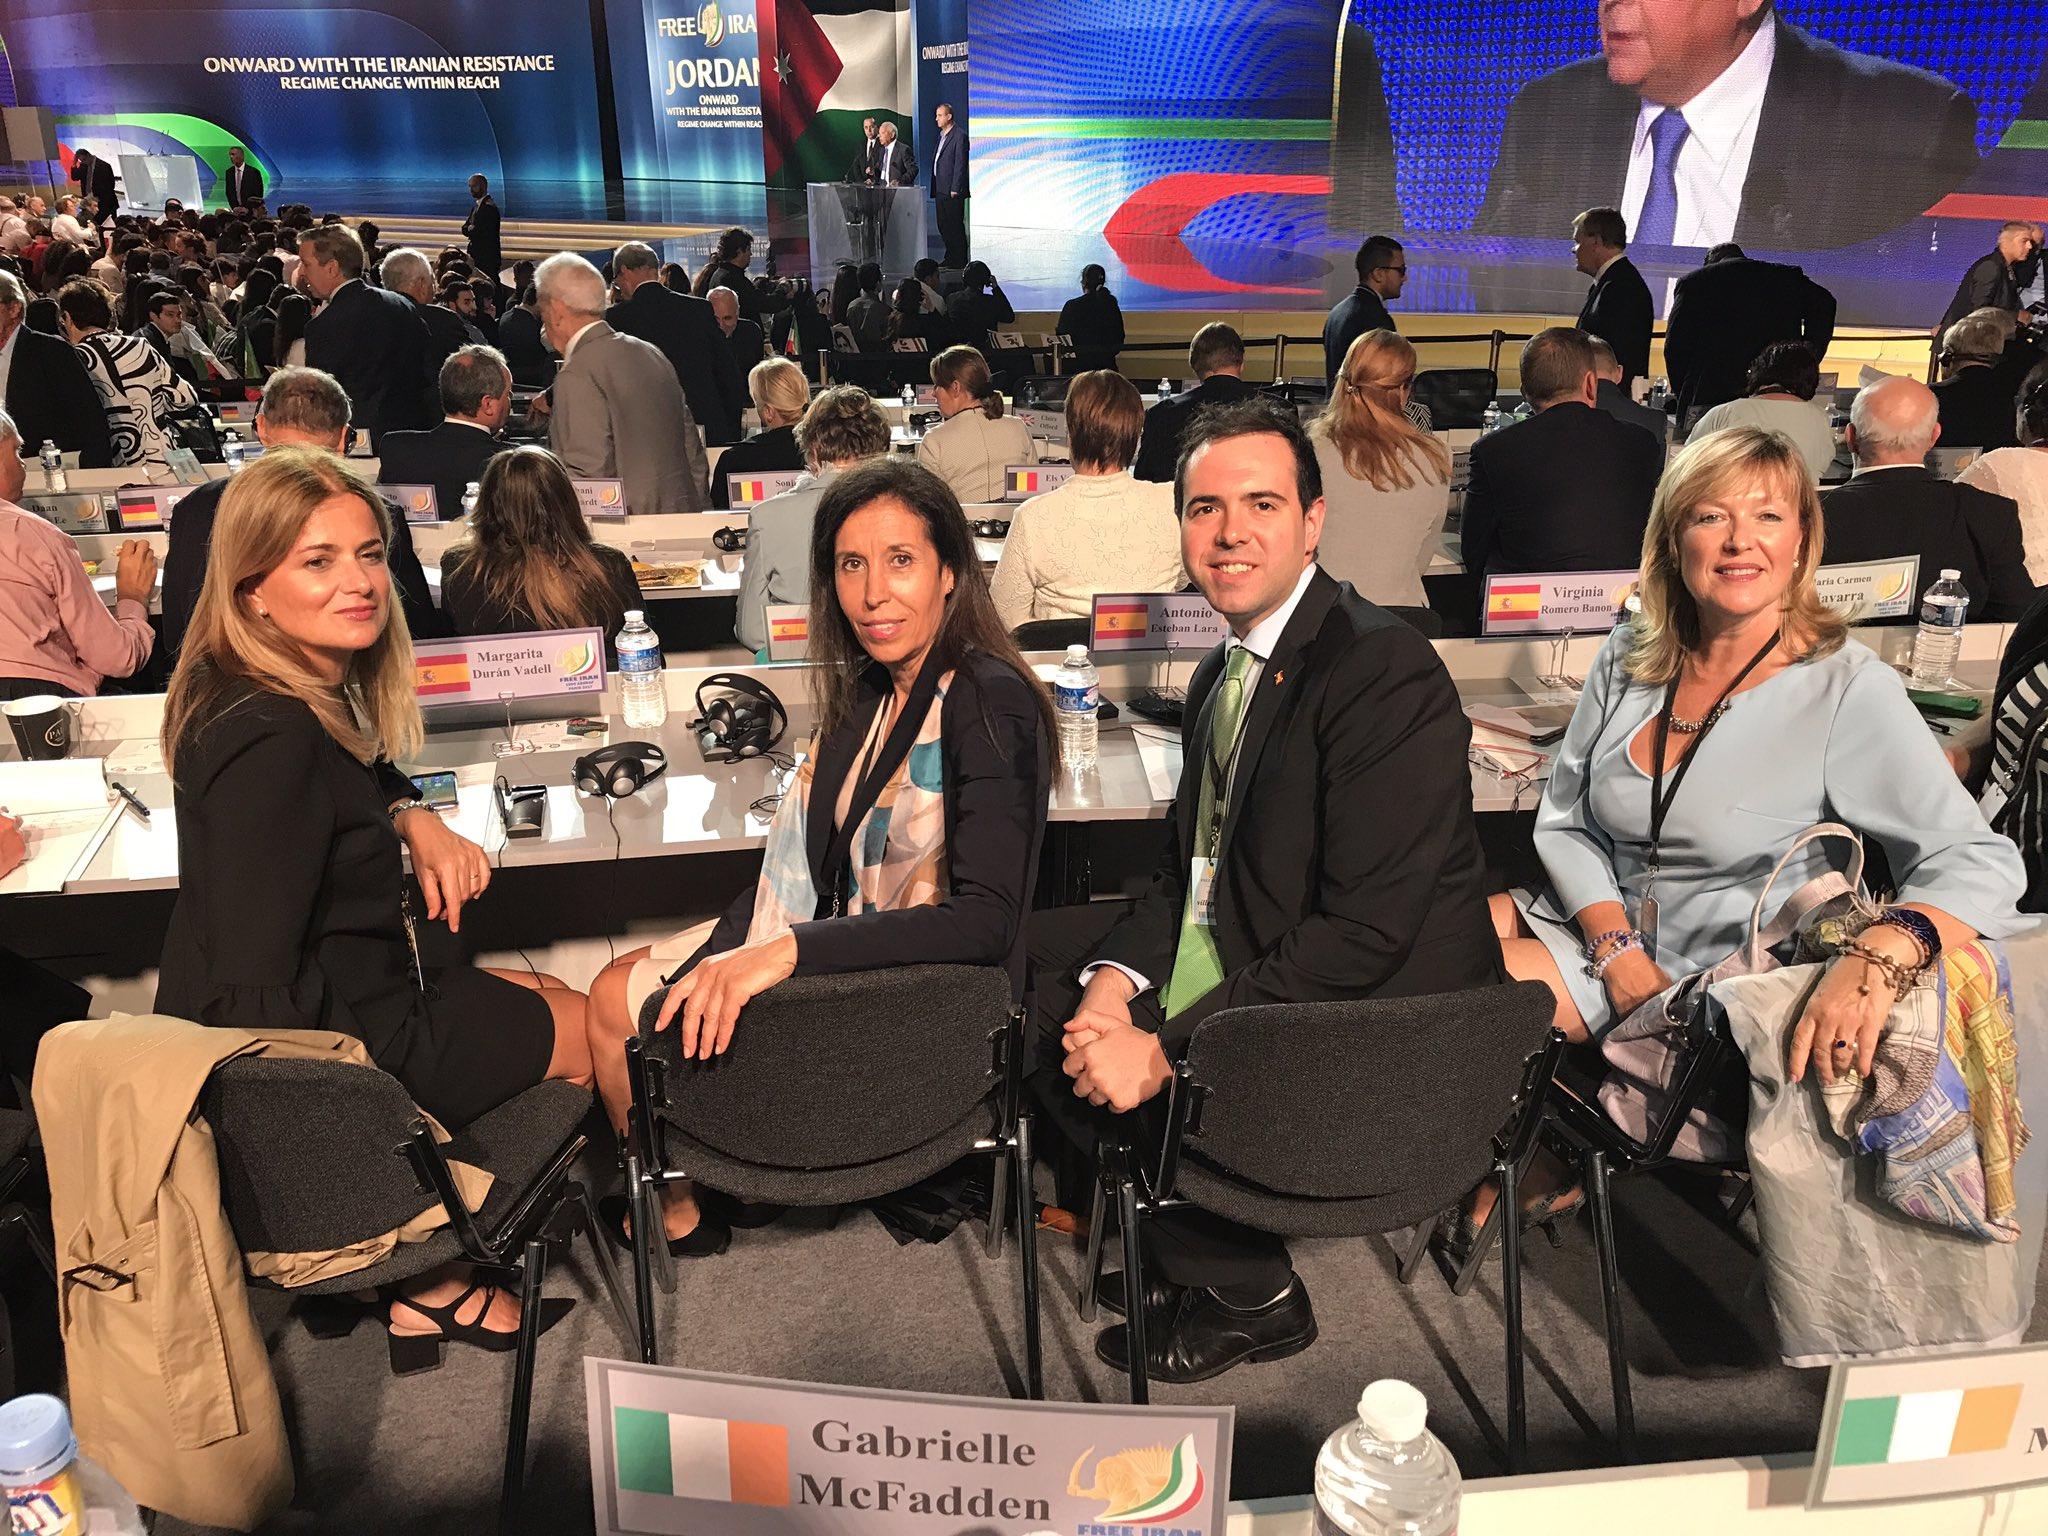 We participateAnnual Ghatering of Iranian Communities and support #FreeIran @Maryam_Rajavi @iran_policy @4freedomIran @womenncri @CNRIFrance https://t.co/DSTYaDpbJP